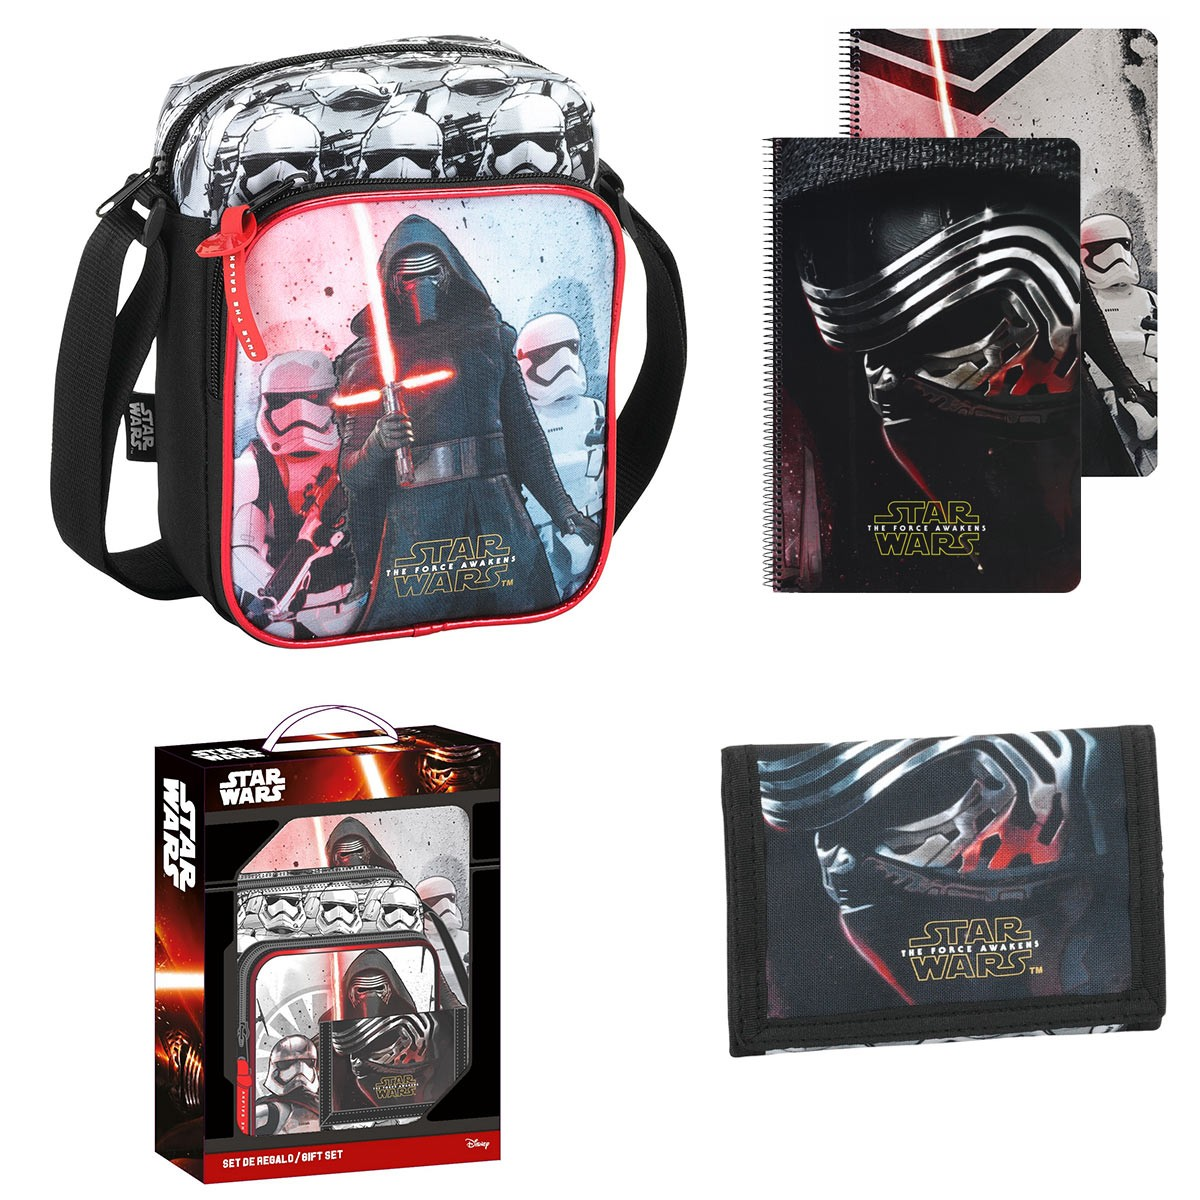 Star Wars Kylo Ren 3 Piece Gift Set  – image 1